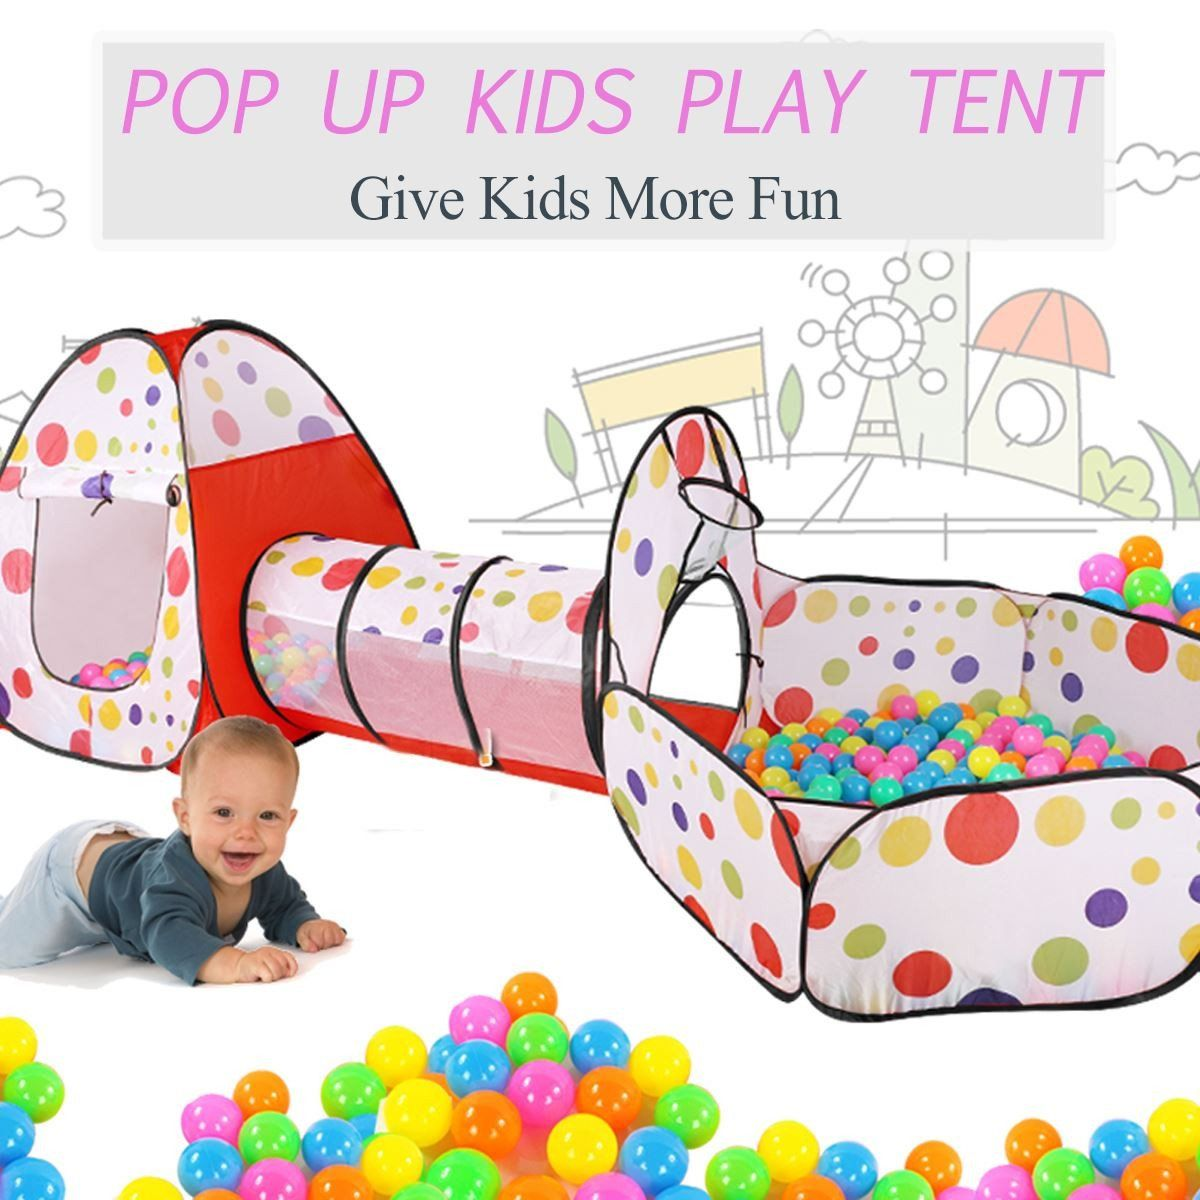 Playhouse Girls Toy Play Tent Childrens Pop Up Play Tent Designed like an Enchanted Forest with a Unique Printed Play Floor Den by Pop It Up